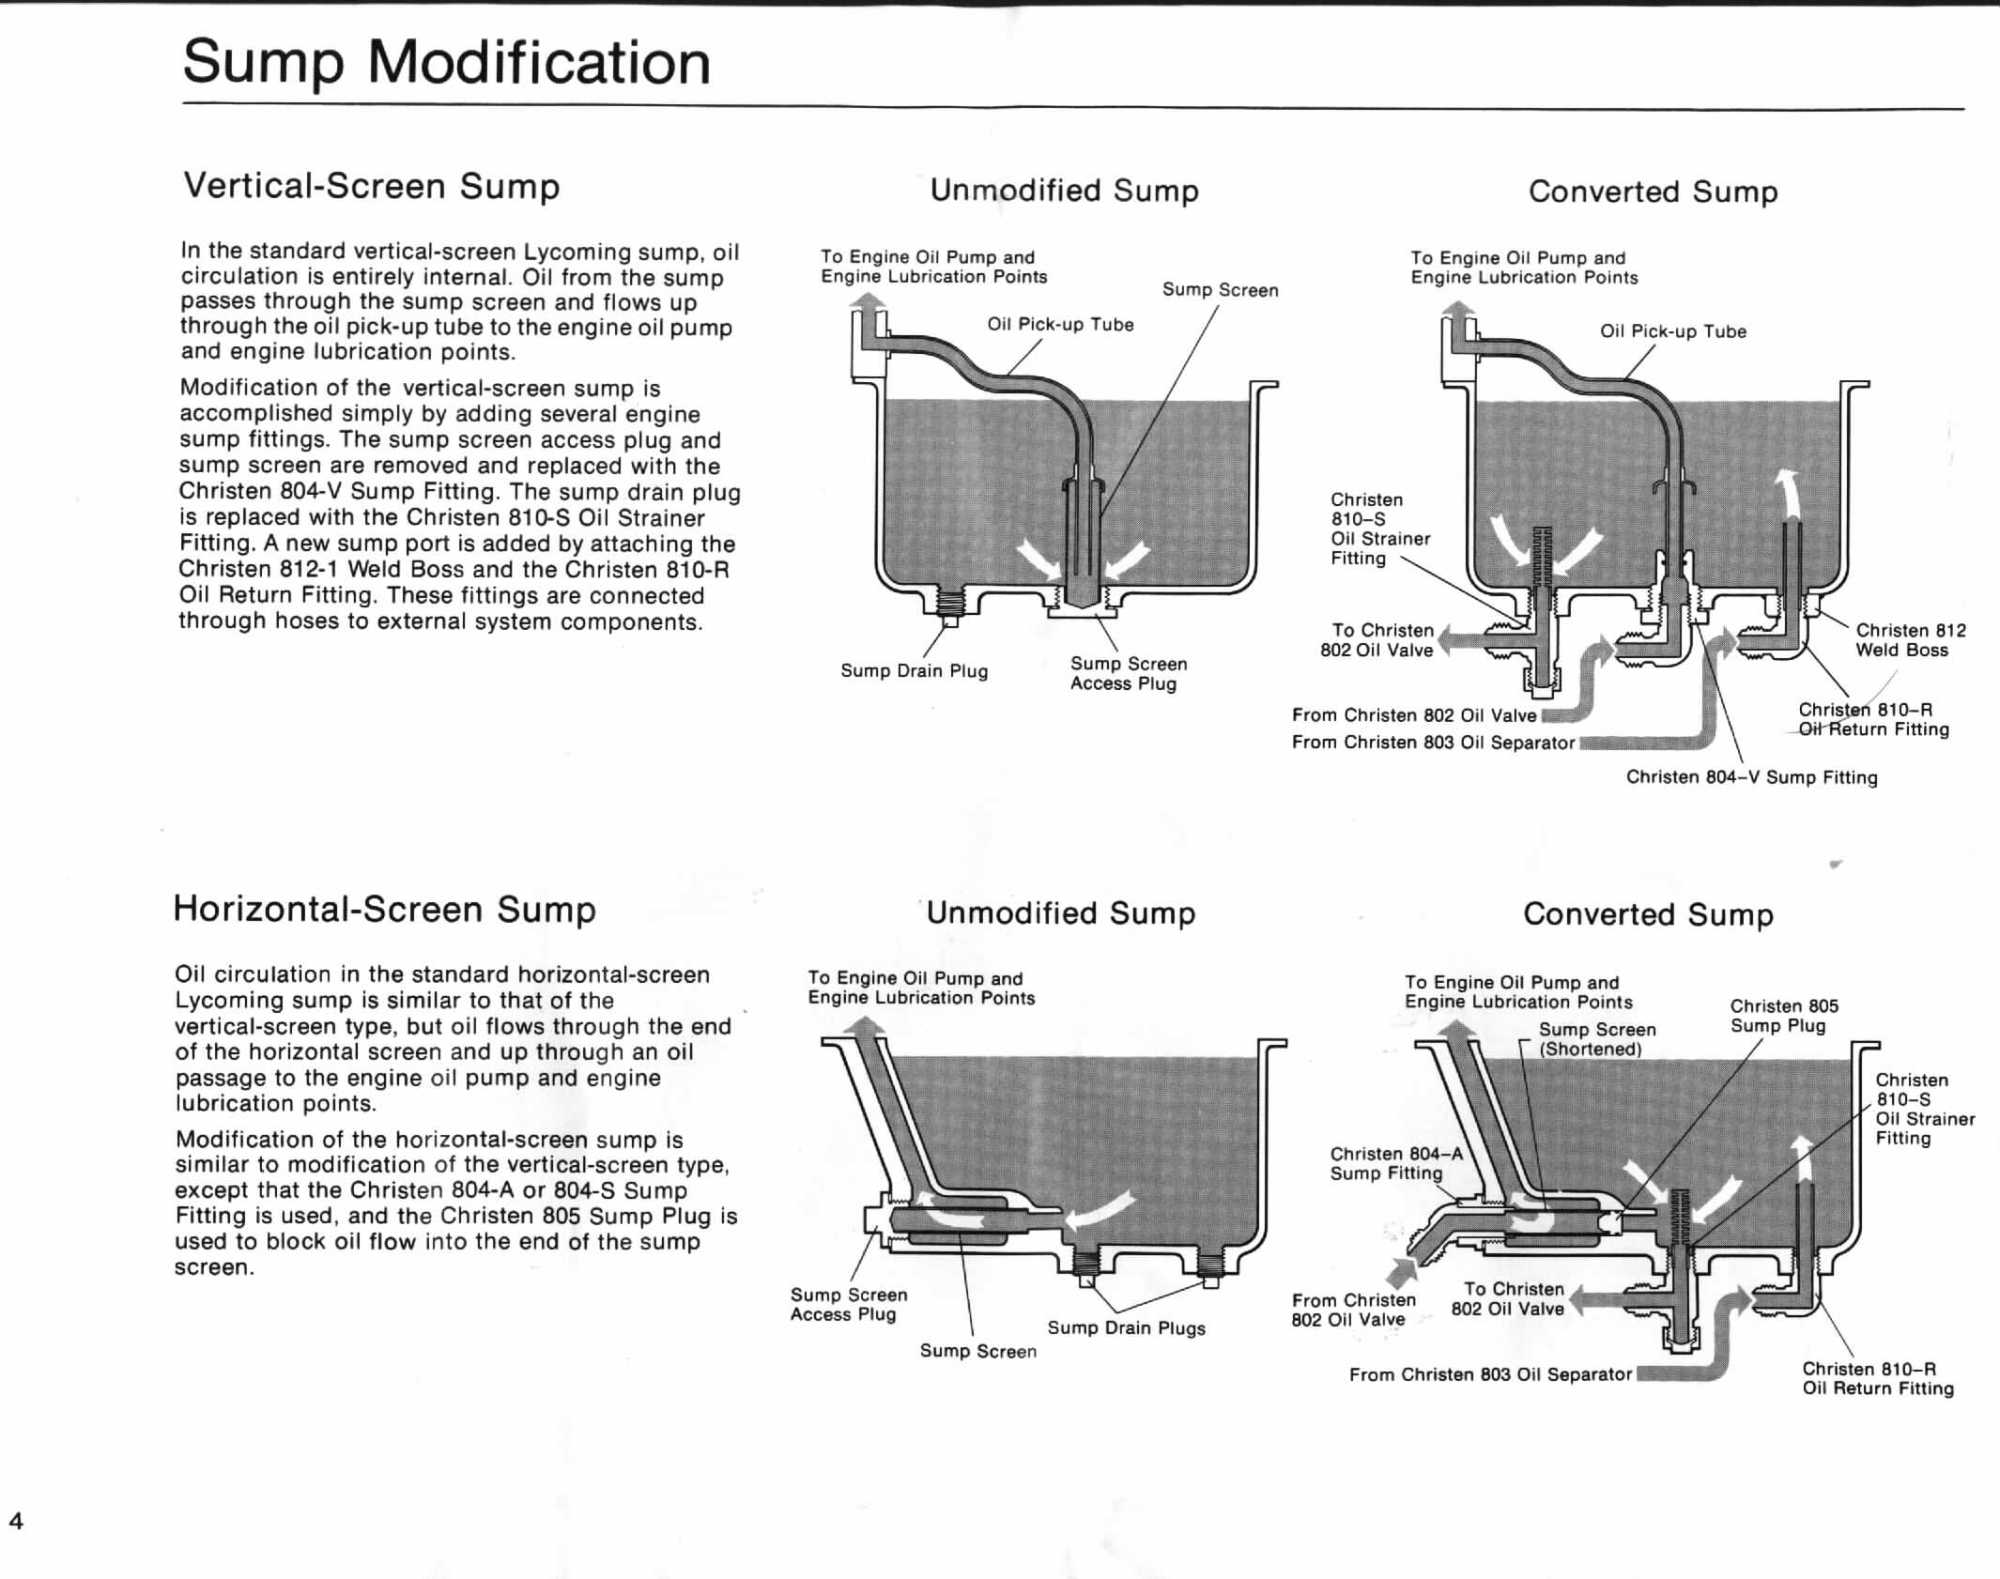 hight resolution of christen inverted oil system sump modifications